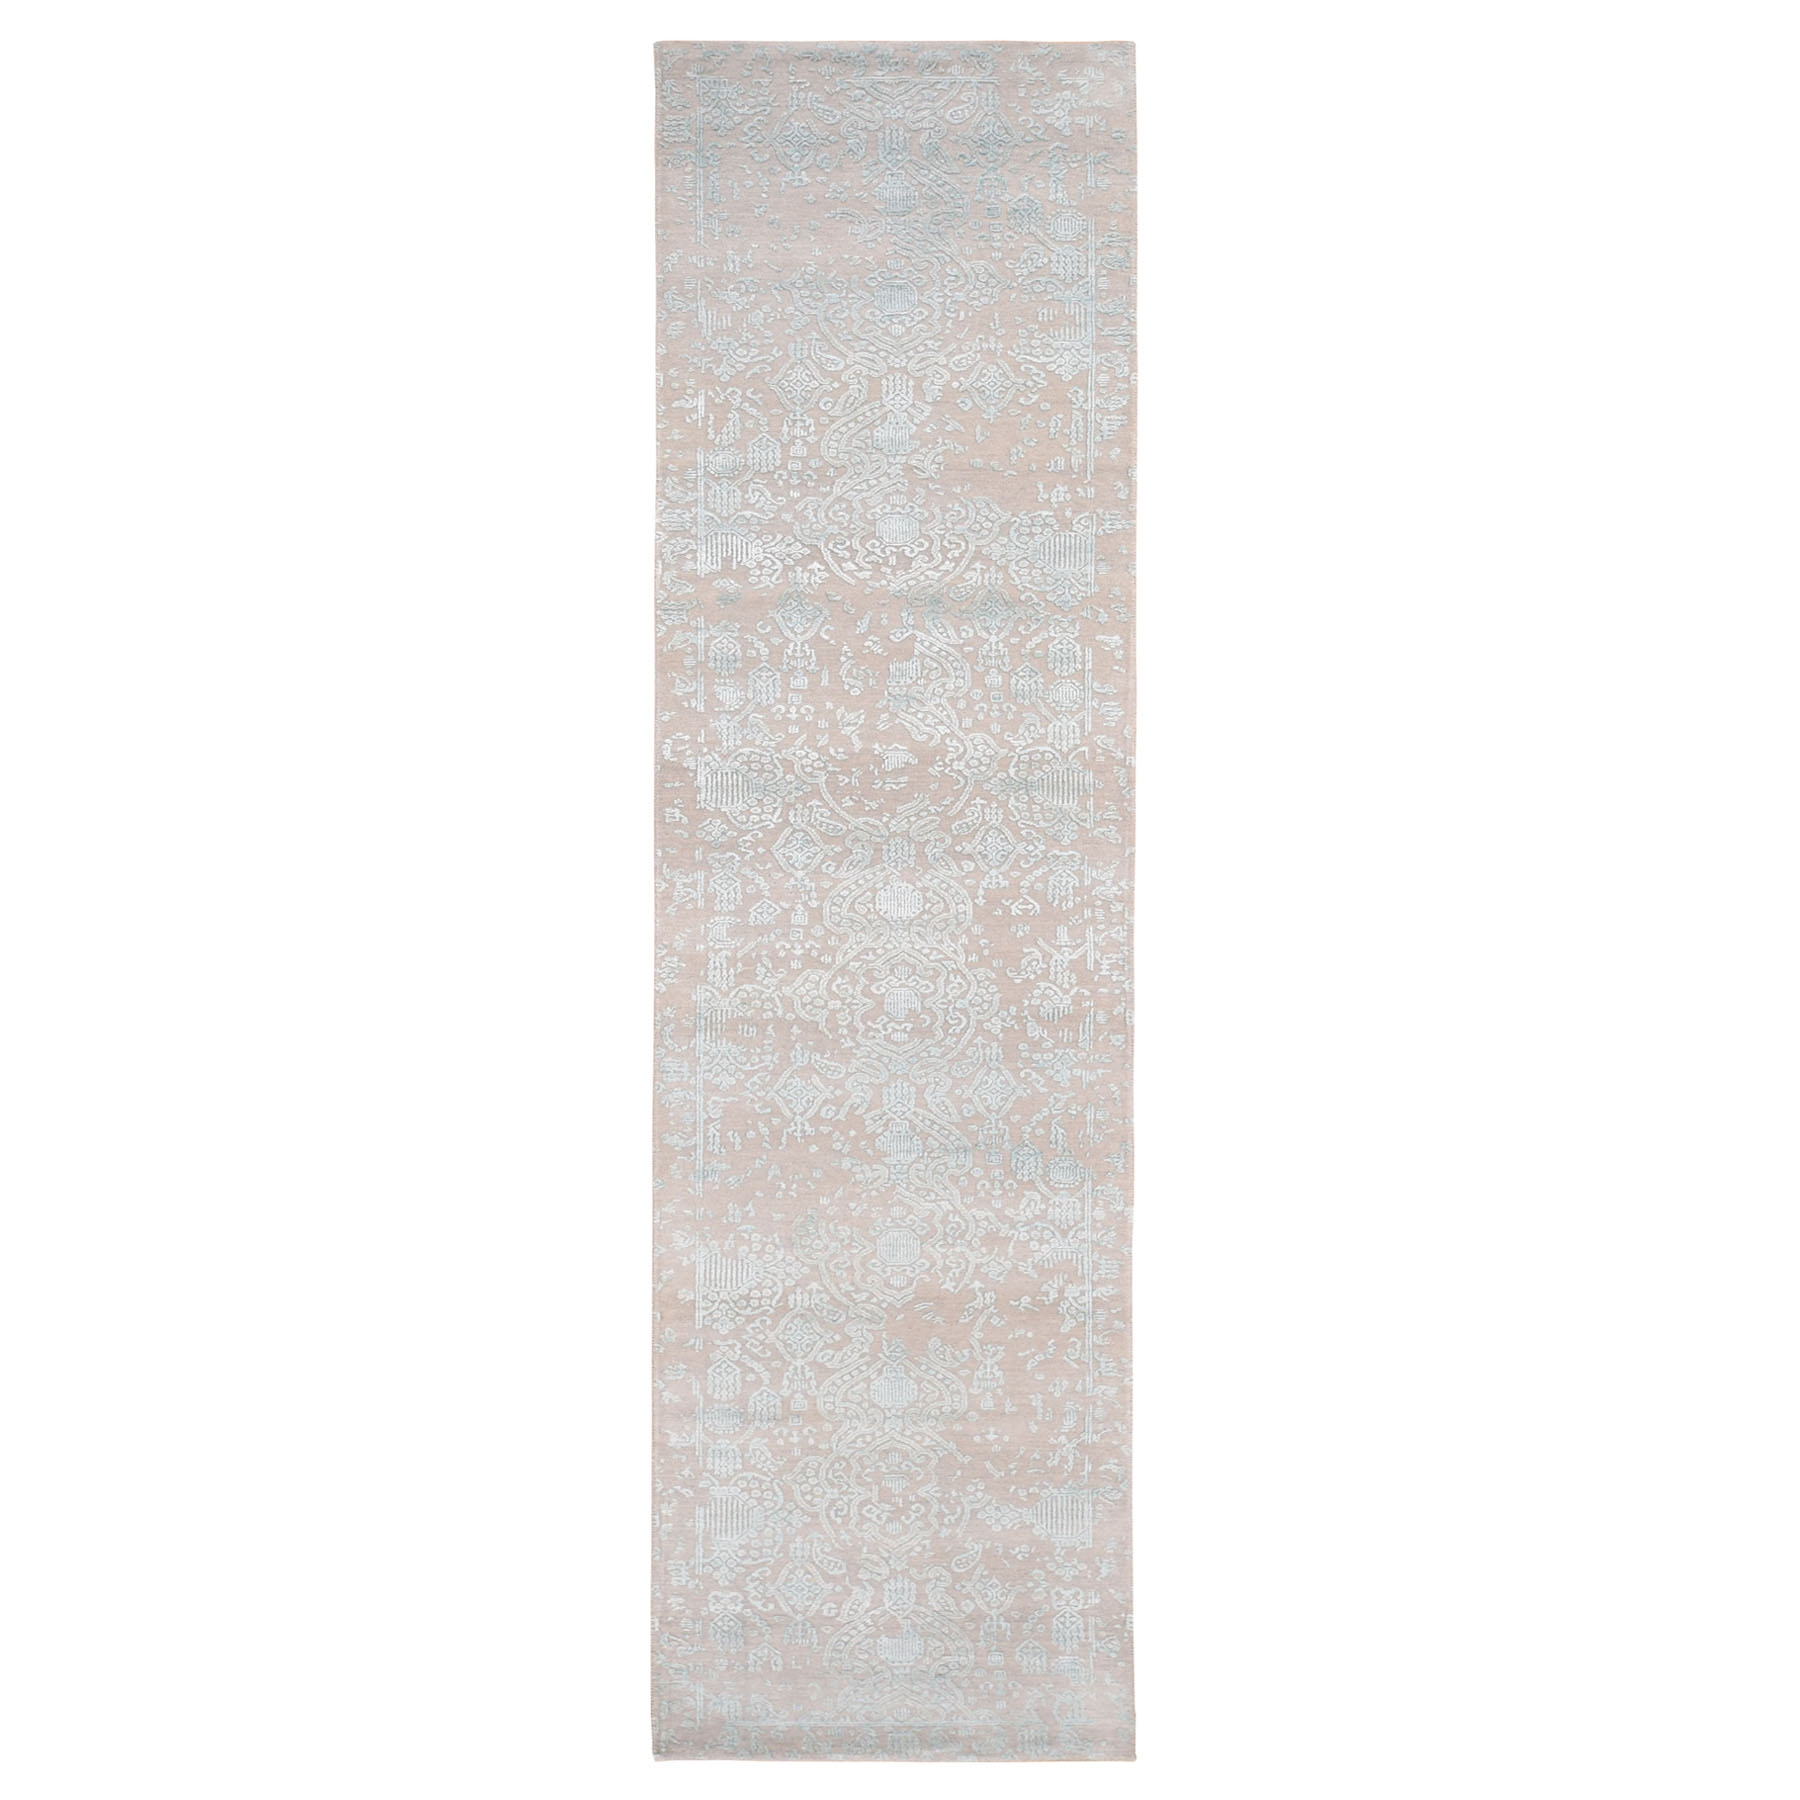 Jewellery Design Wool And Silk Tone On Tone Runner Hand Knotted Oriental Rug moad806c